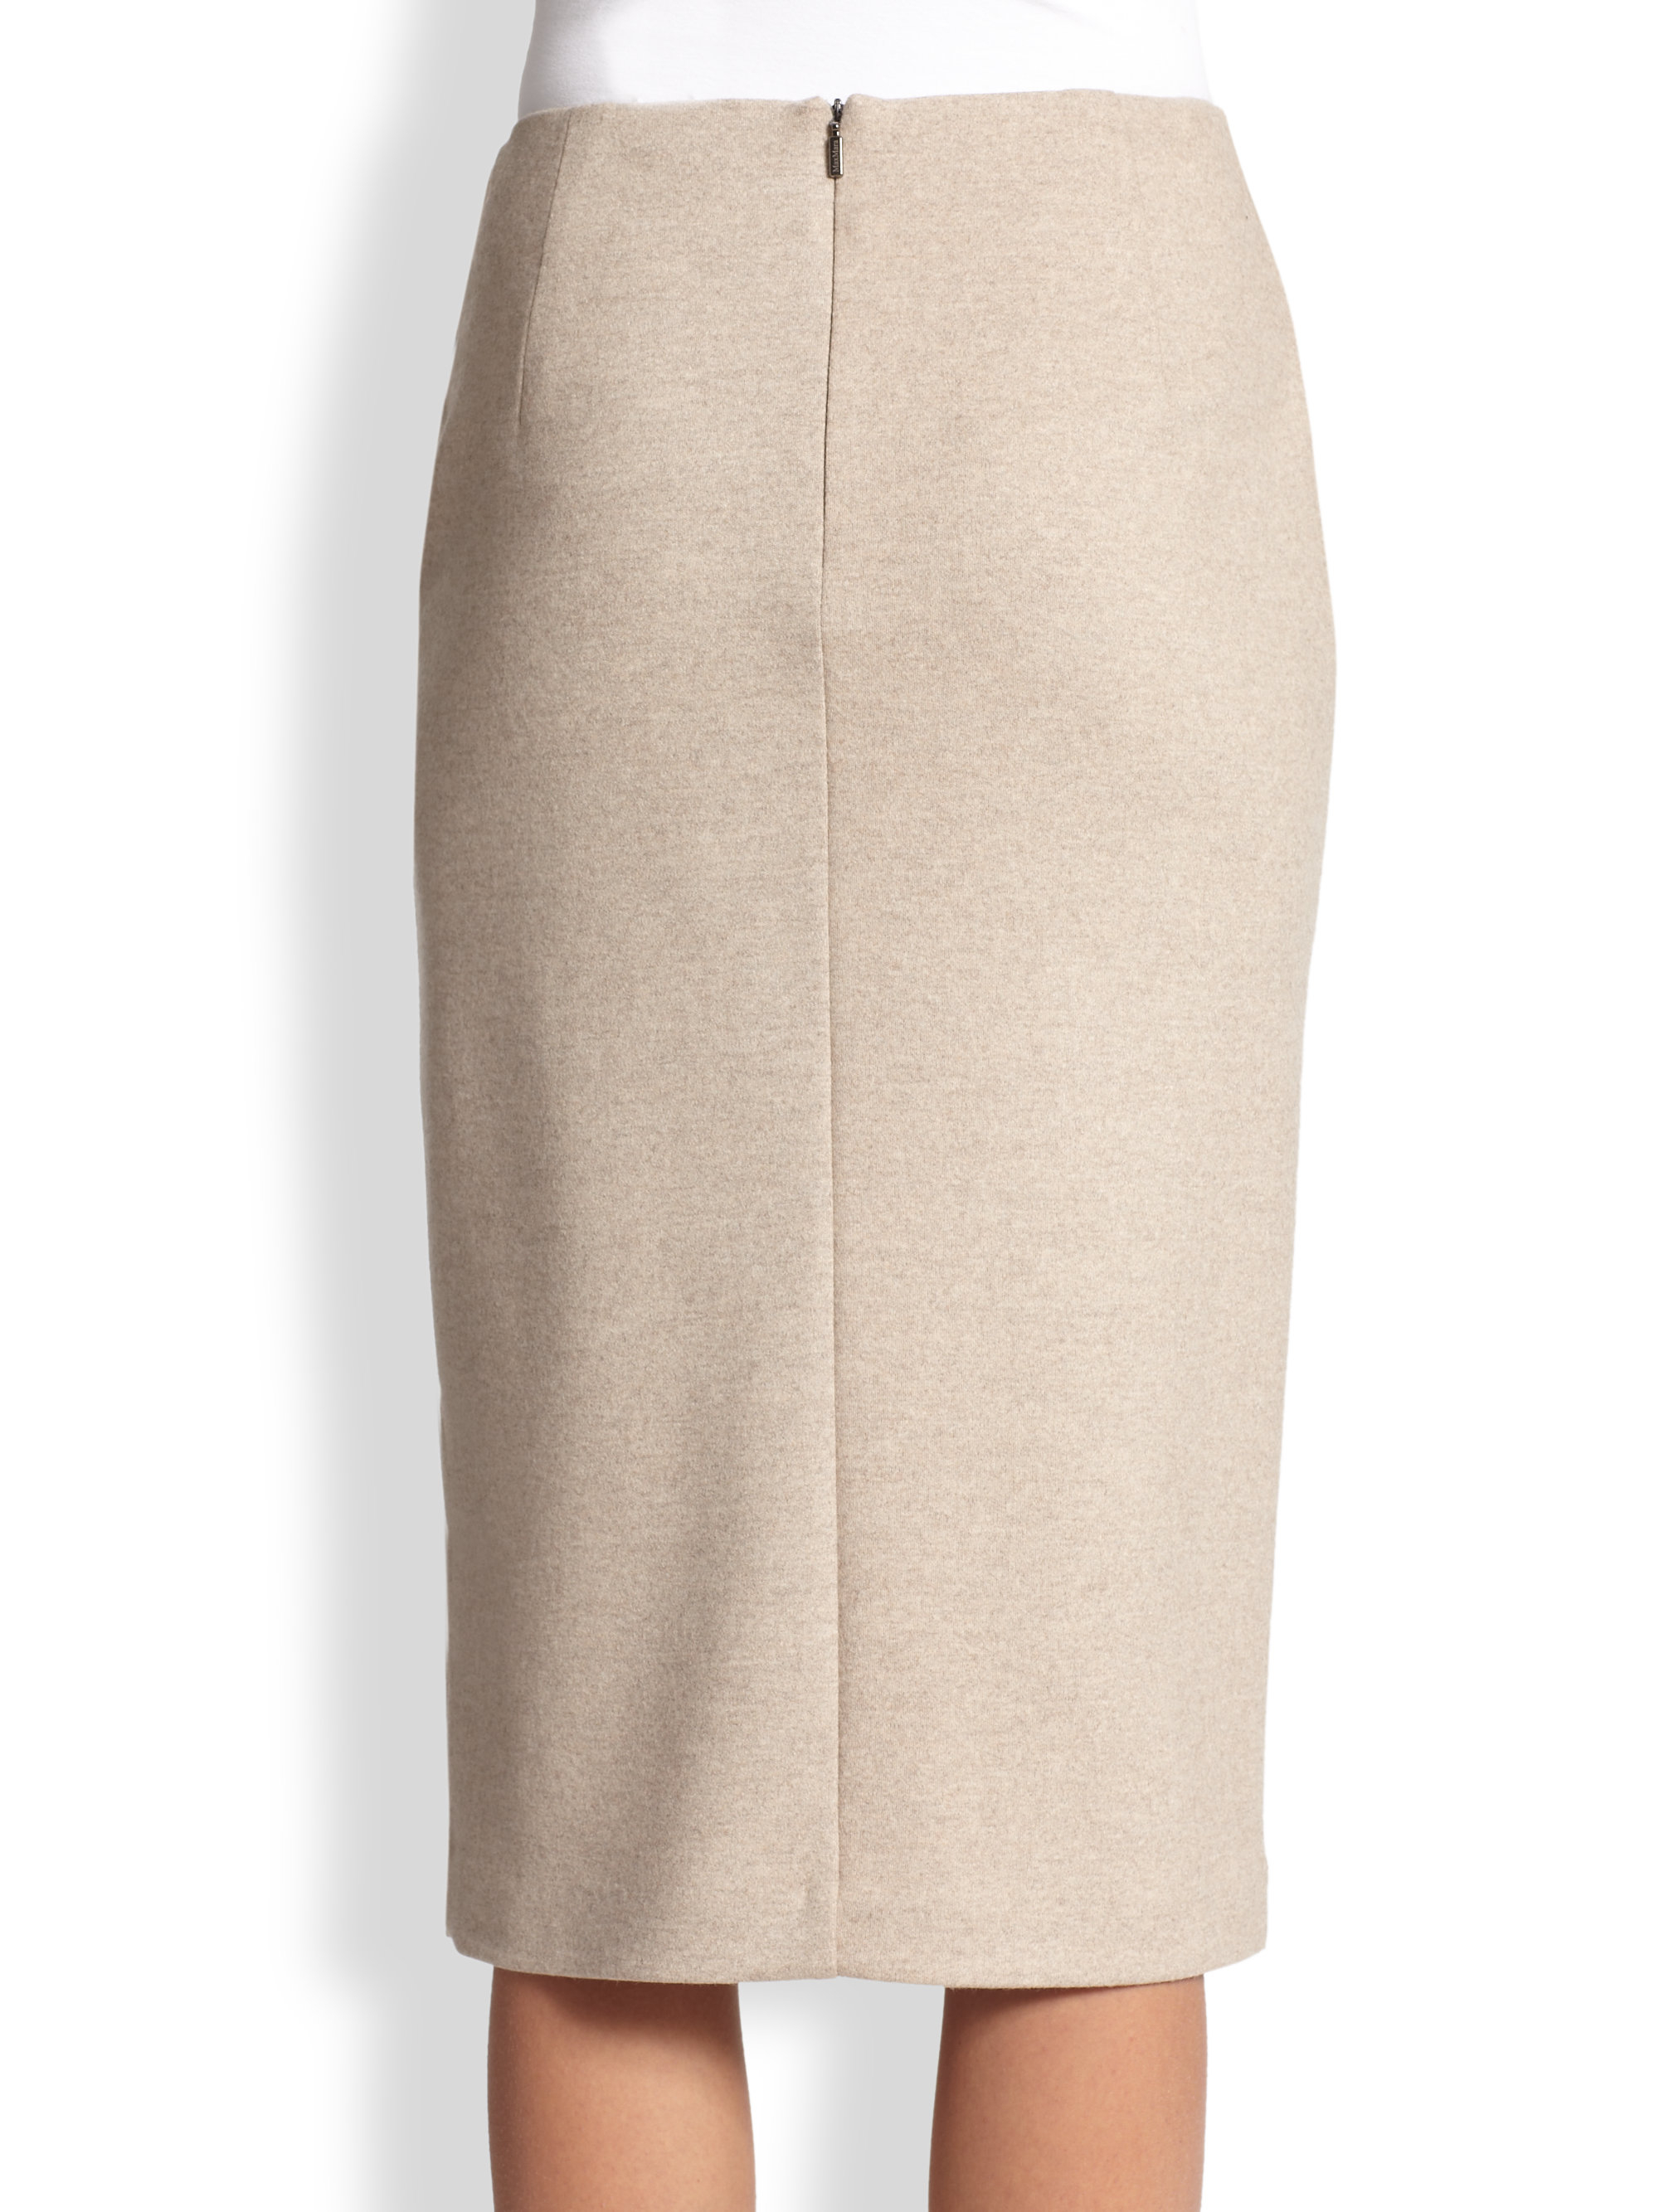 Max mara Nuccia Slit Wool Pencil Skirt in Natural | Lyst